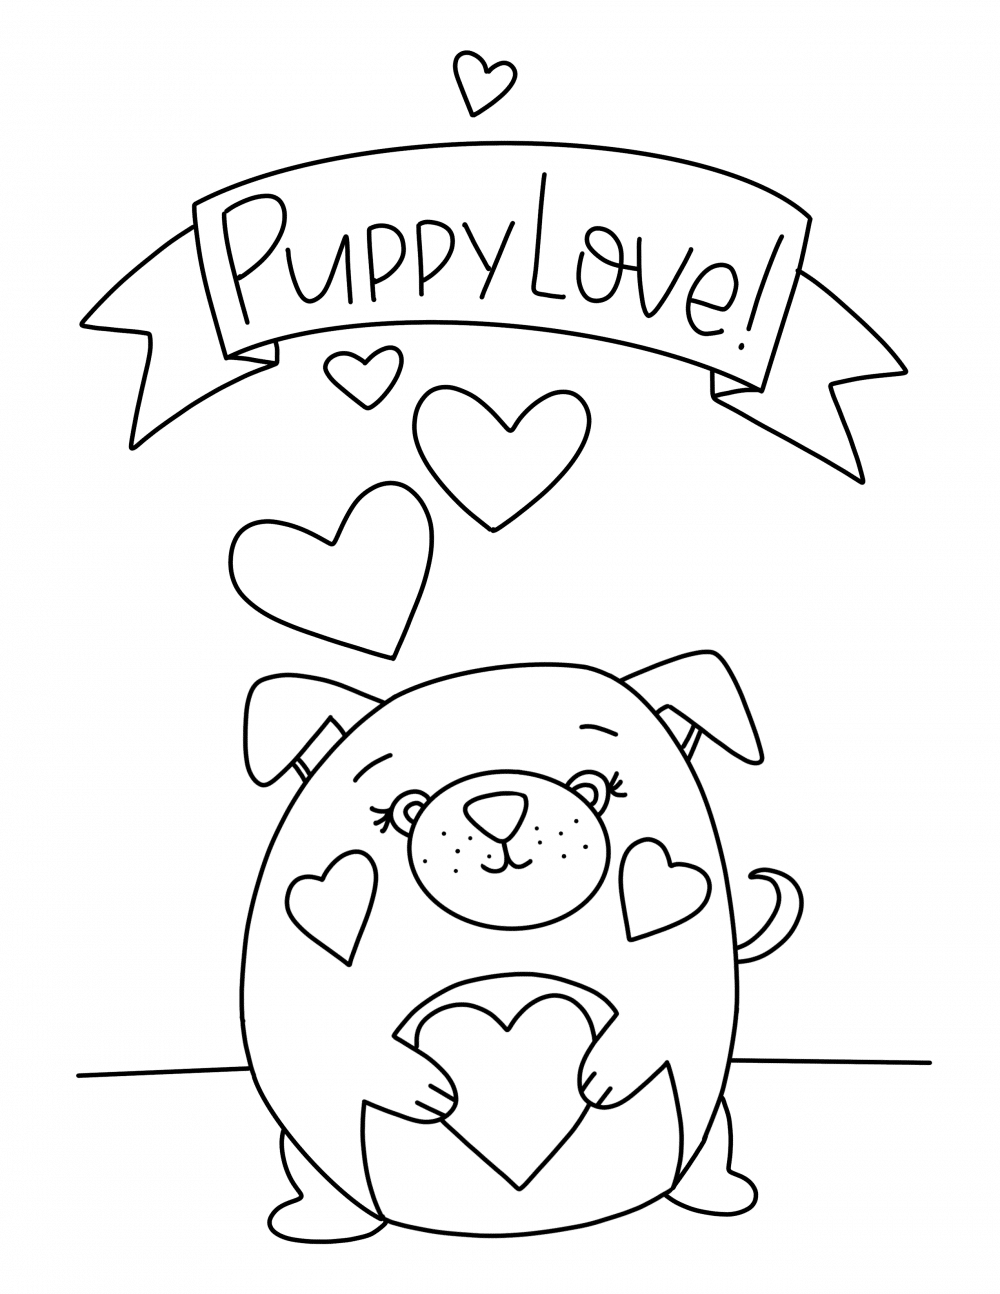 Free valentine printable coloring pages.